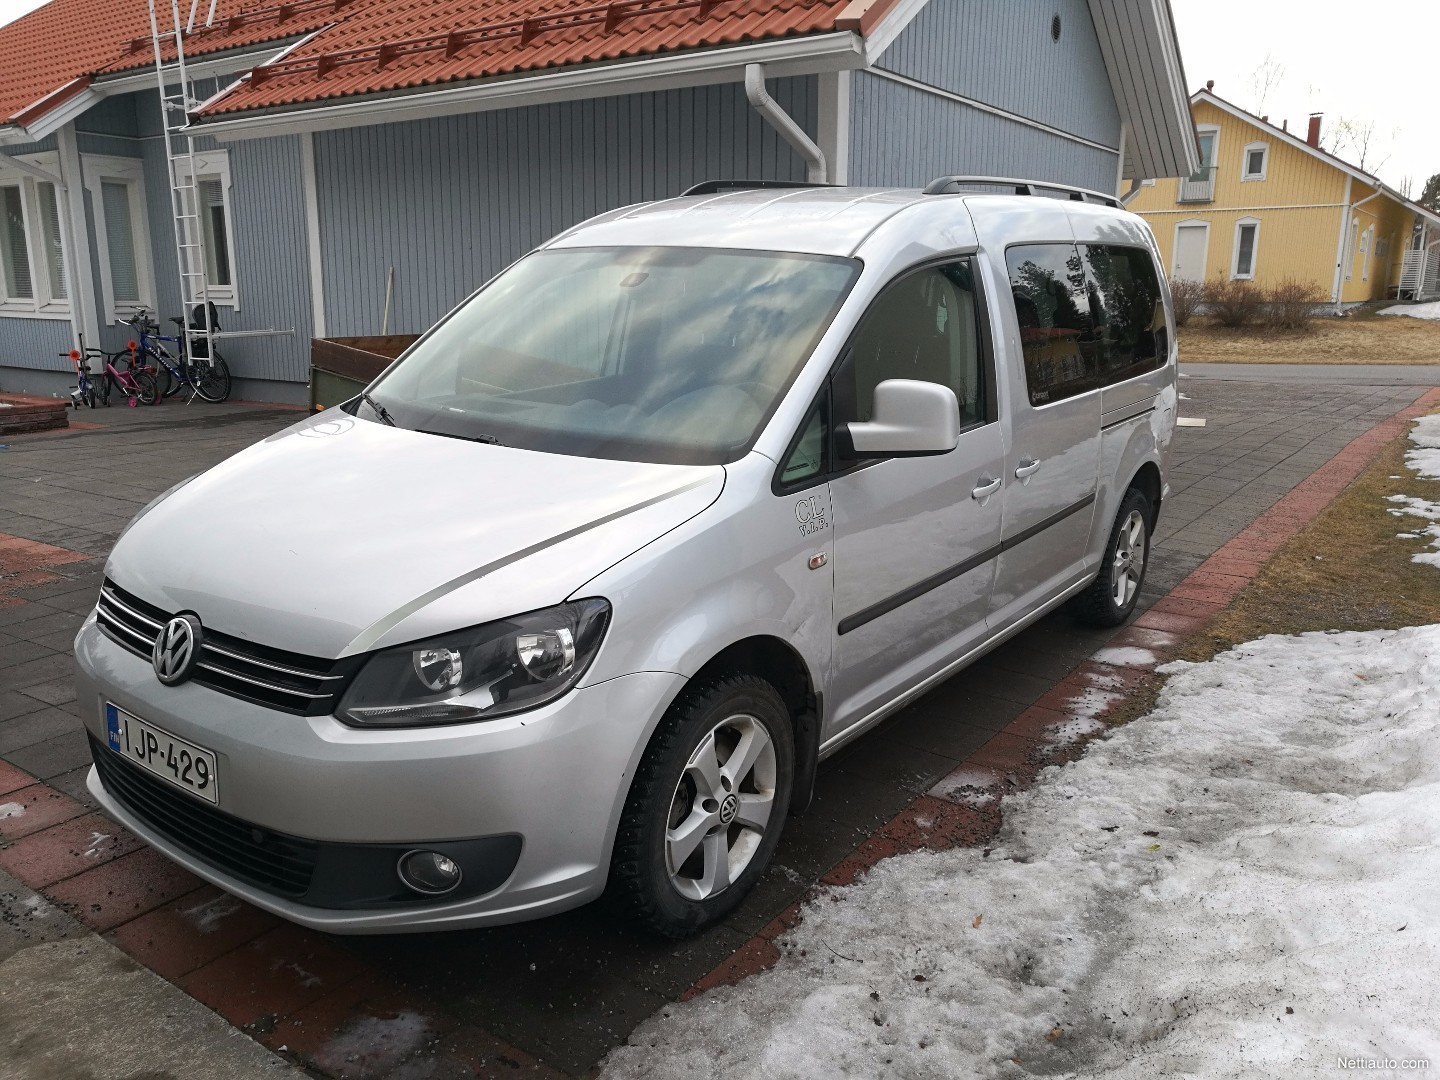 volkswagen caddy maxi comfortline 1 6 tdi 75 kw dsg mpv 2011 used vehicle nettiauto. Black Bedroom Furniture Sets. Home Design Ideas